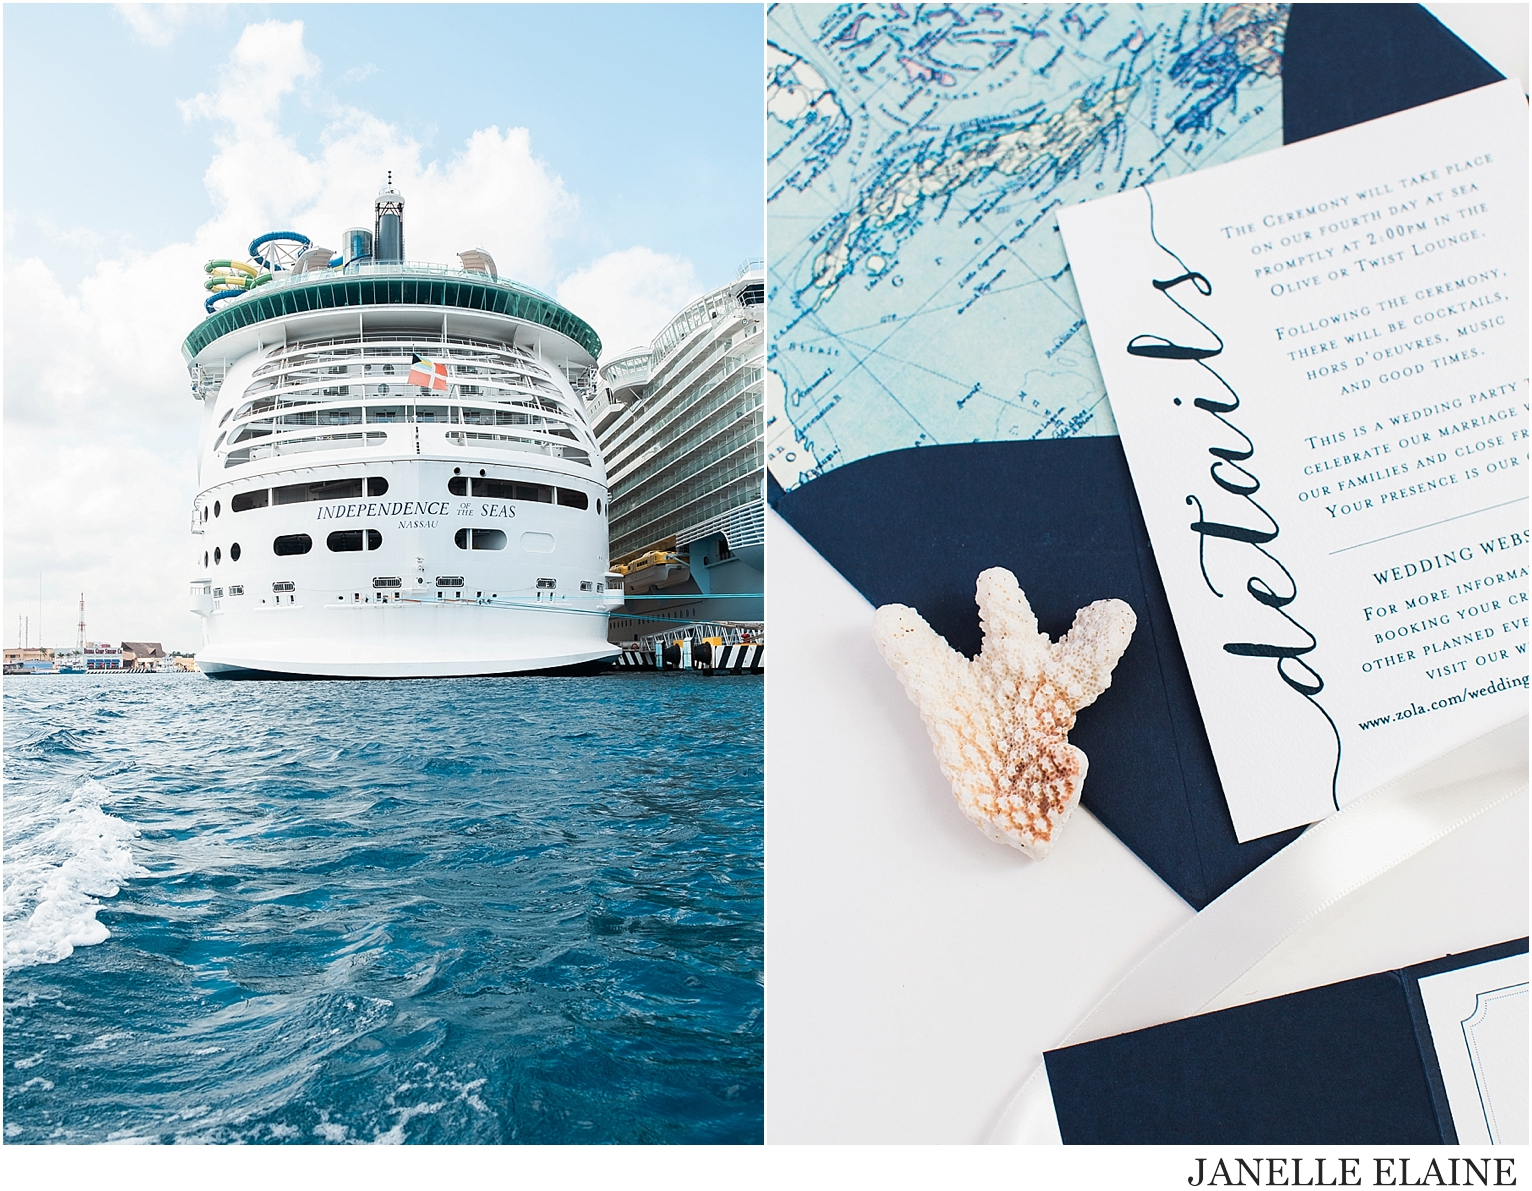 white wedding-details-royal caribbean-janelle elaine photography-3.jpg